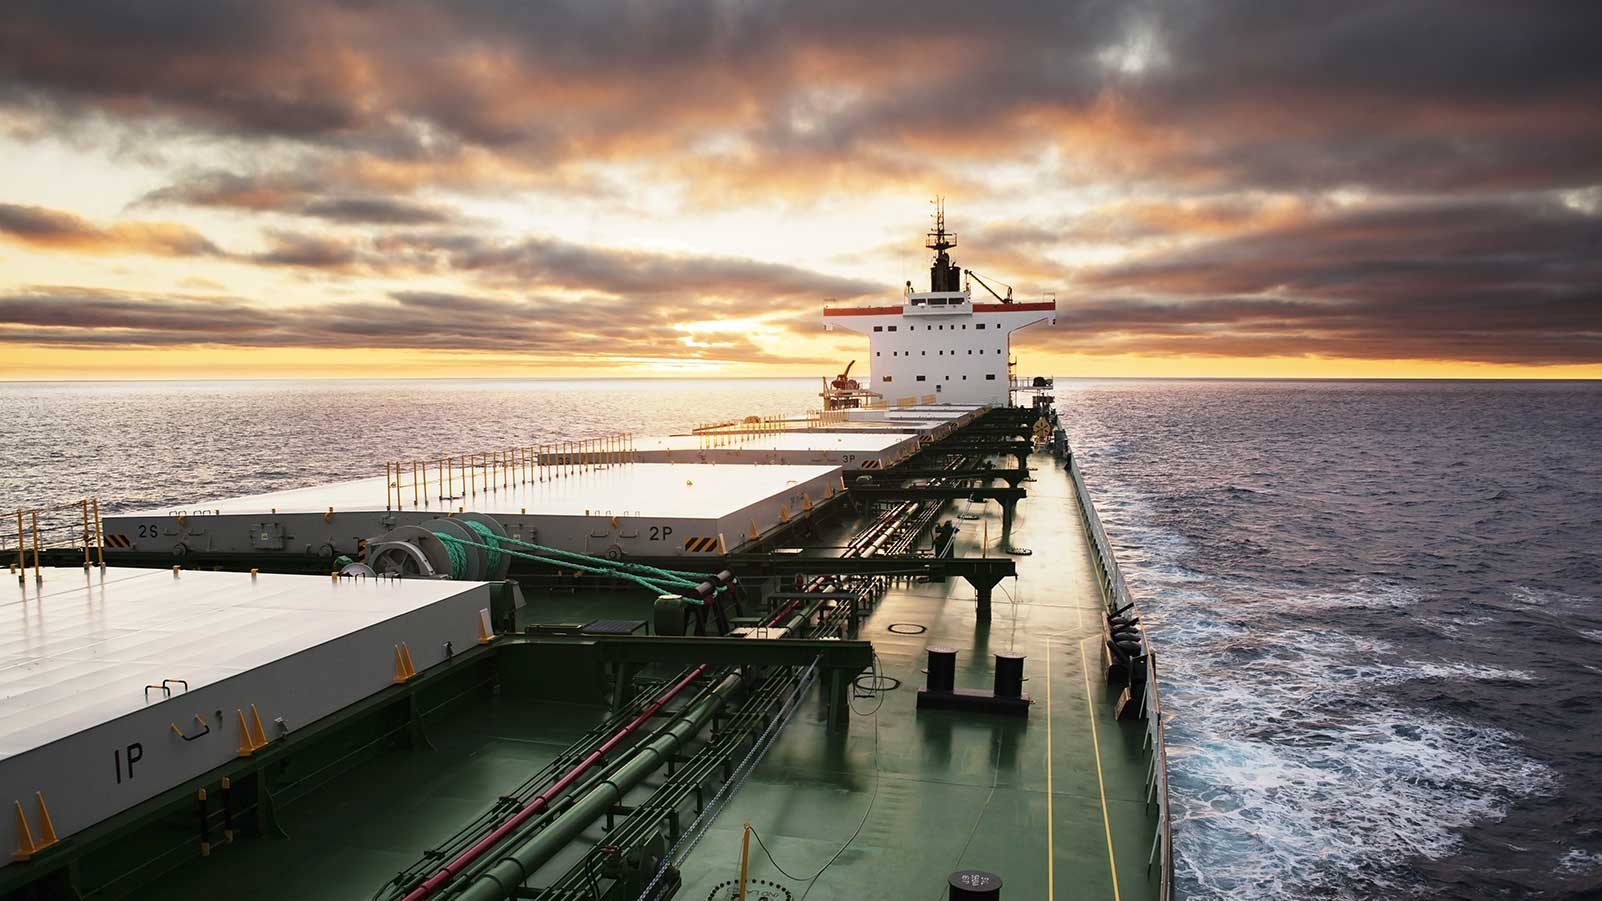 MARITIME SAFETY SOLUTIONS